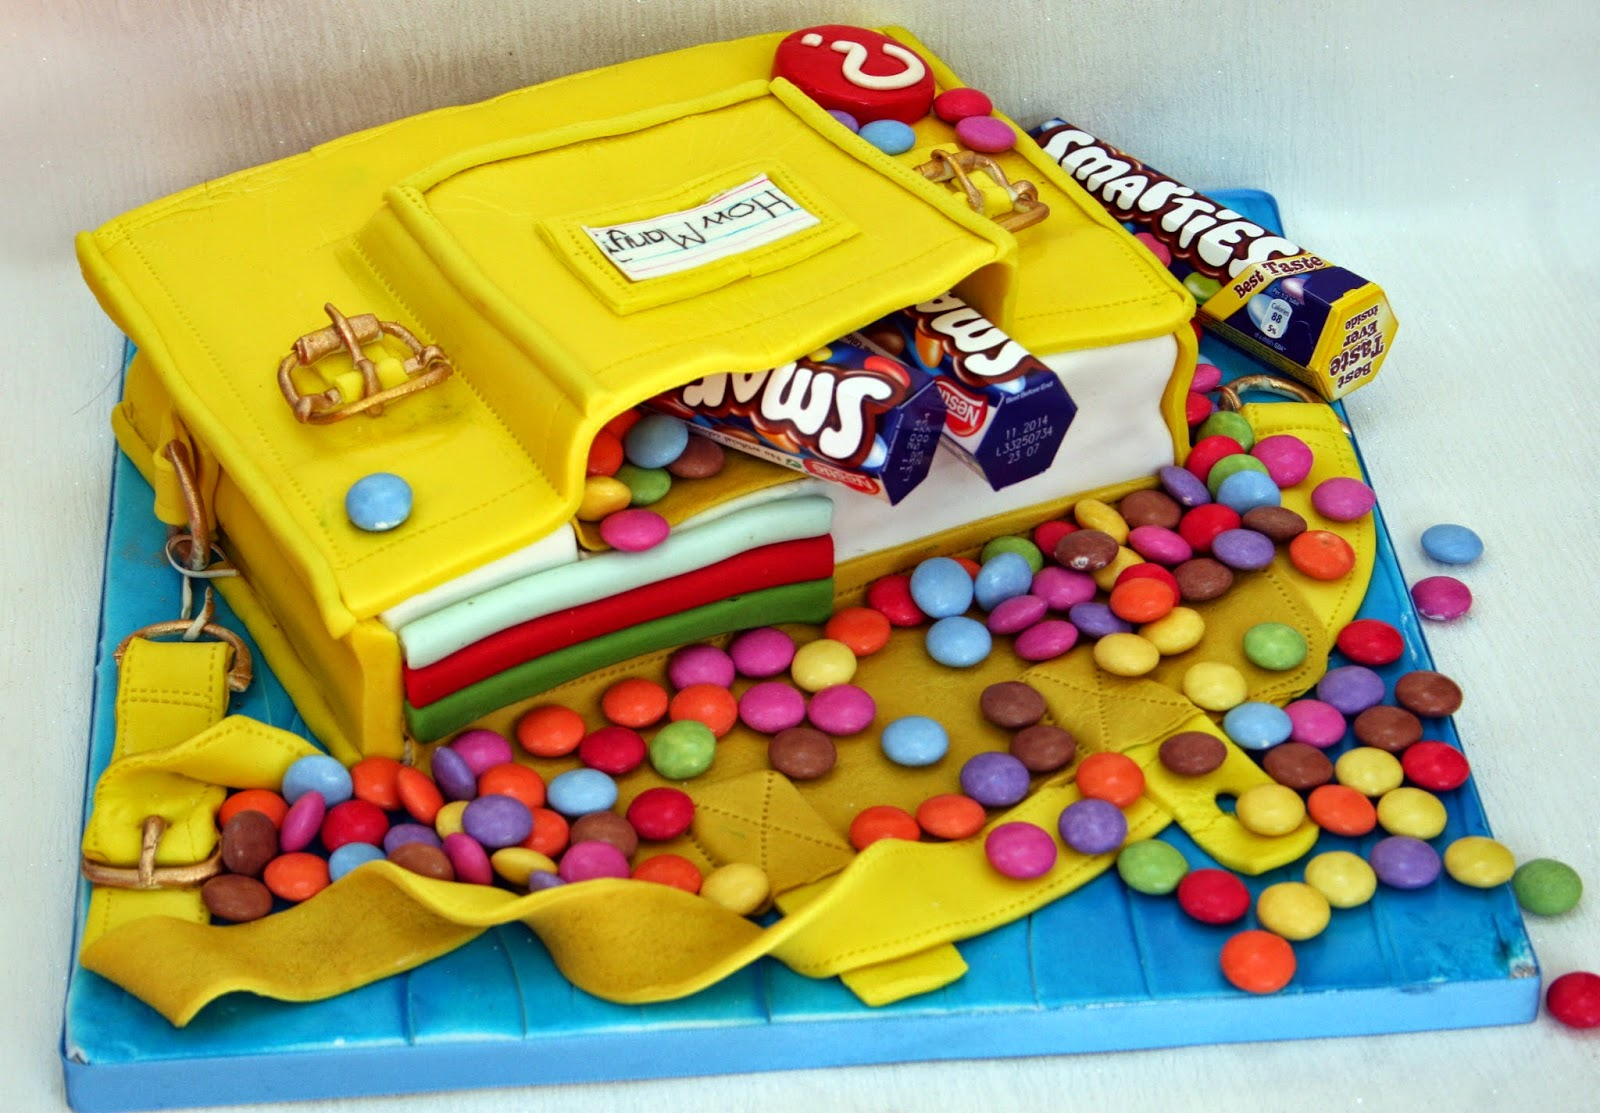 The Perfectionist Confectionist Guess How Many Smarties Cake